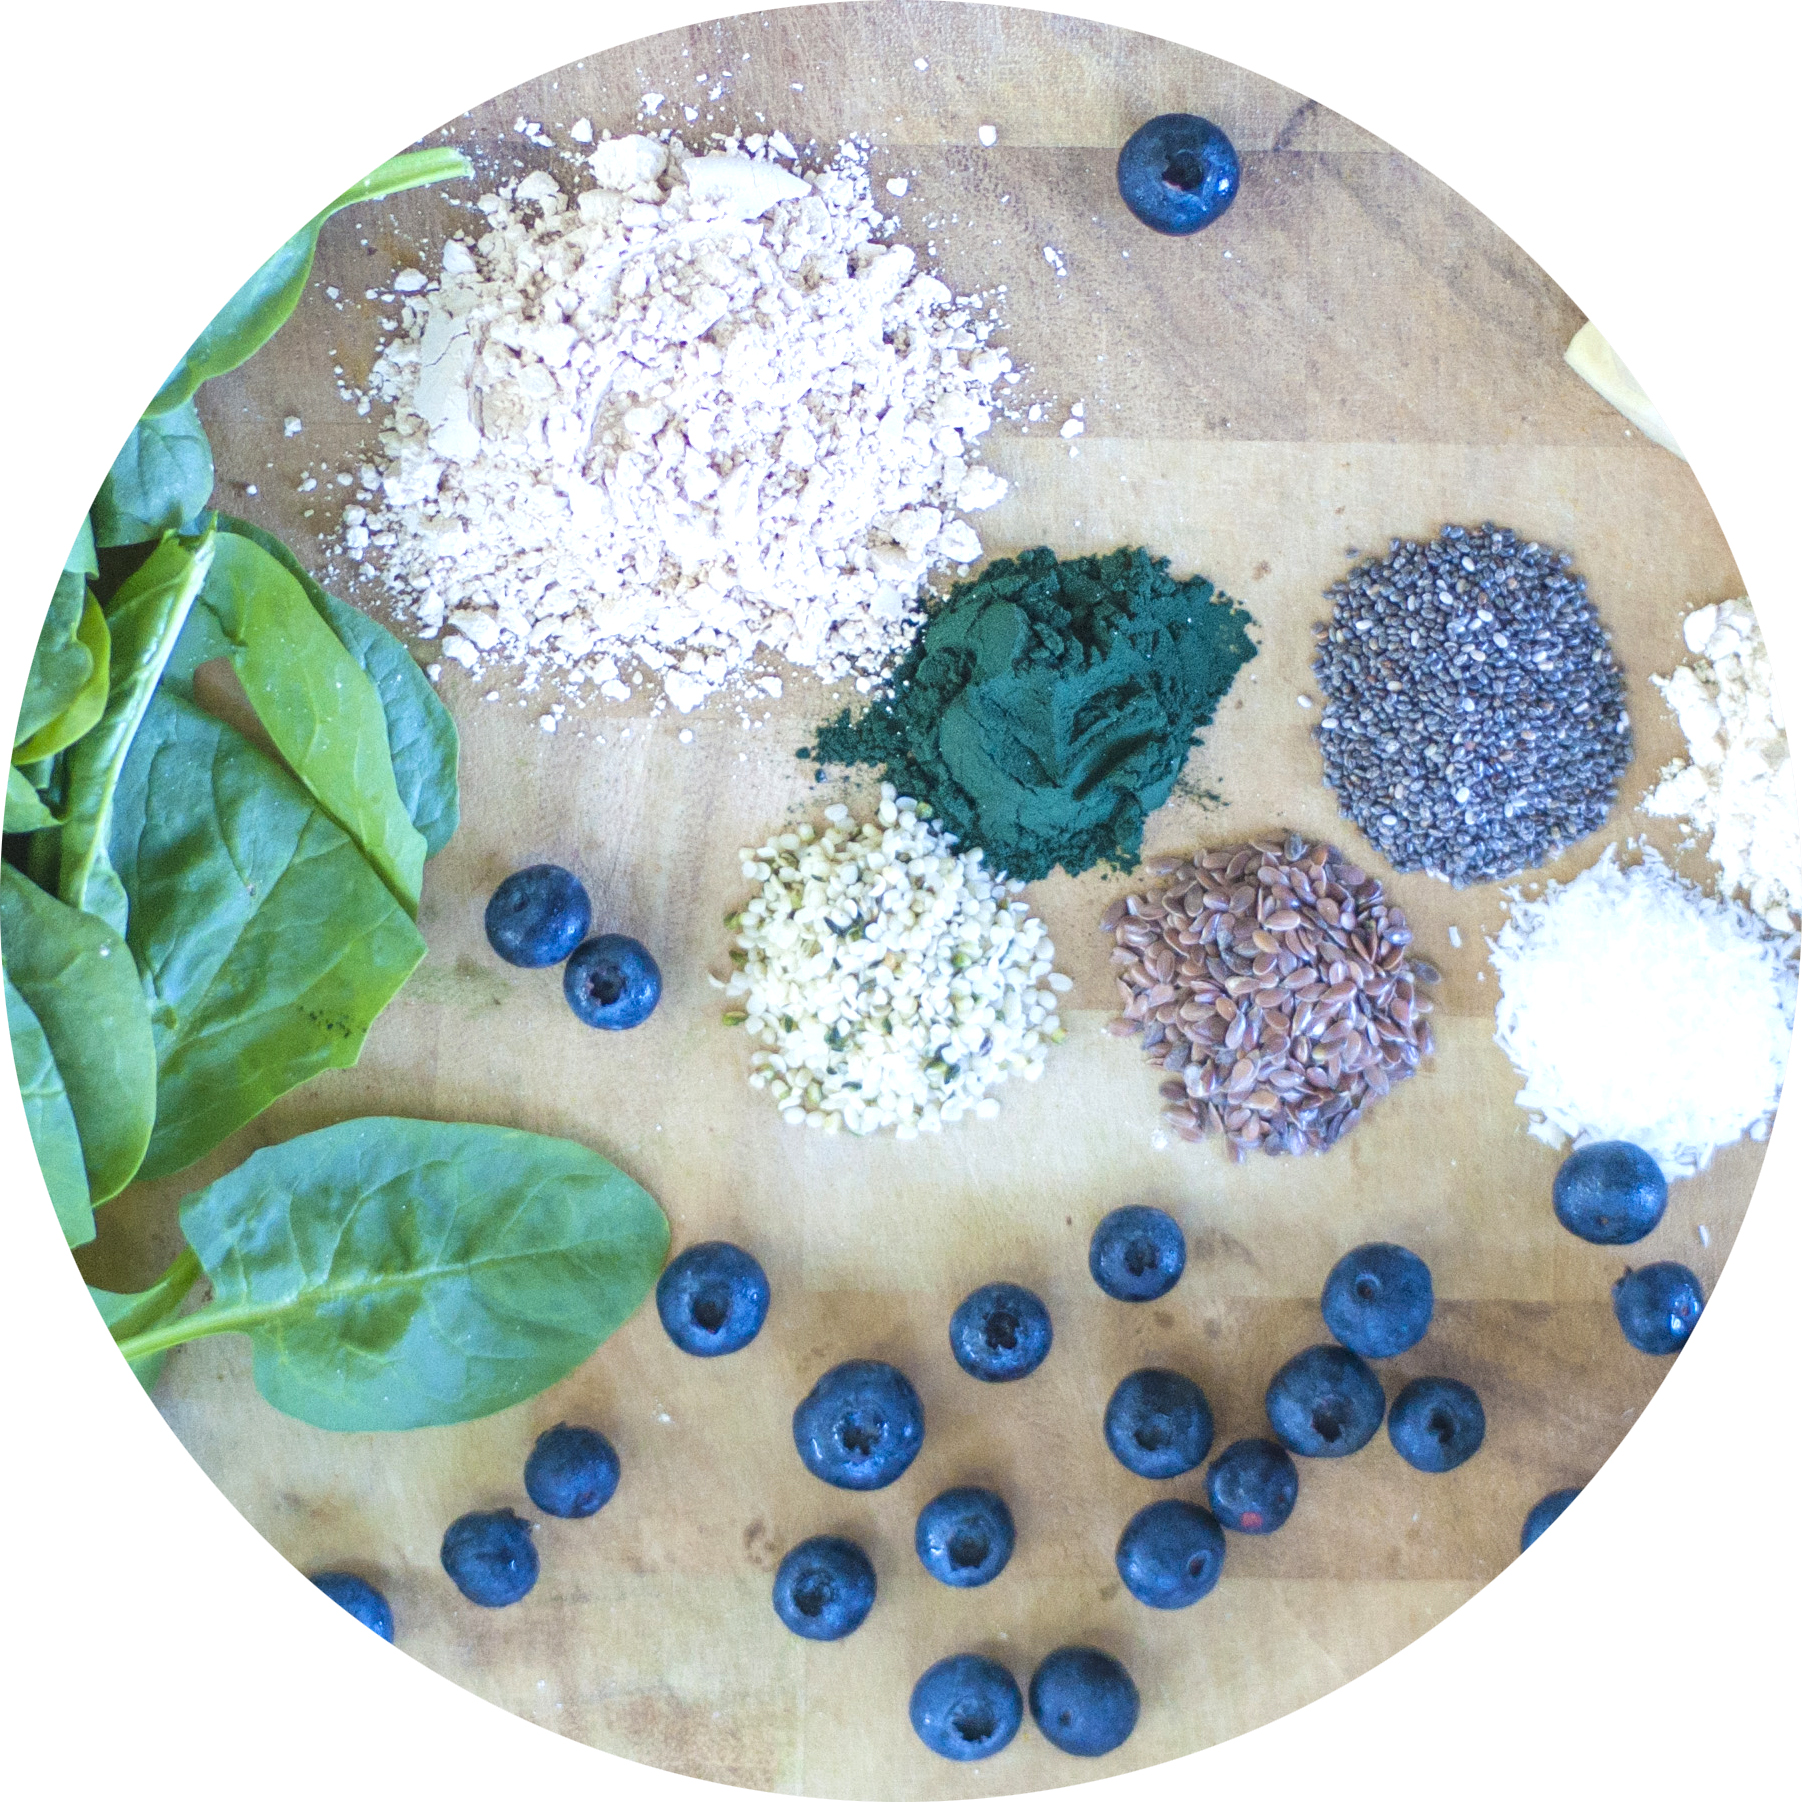 Erin Stanczyk | Lifestyle Design | eat.move.rest. | Take Your Health to the Next Level With Smoothies + Juices Part 5: Supercharge Your Health With Superfoods